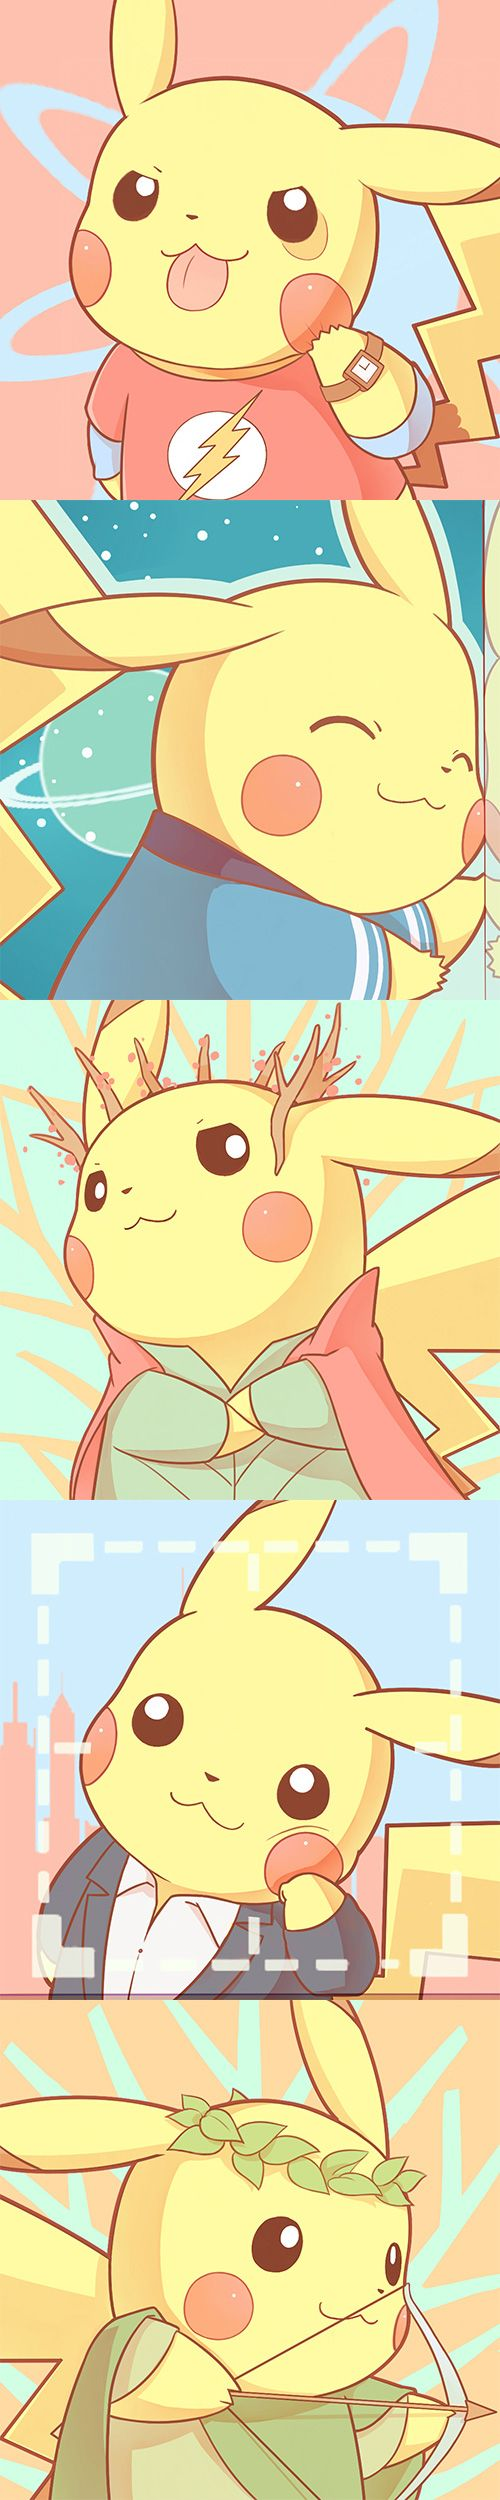 [Pokemon Daily] Flash Pikachu!